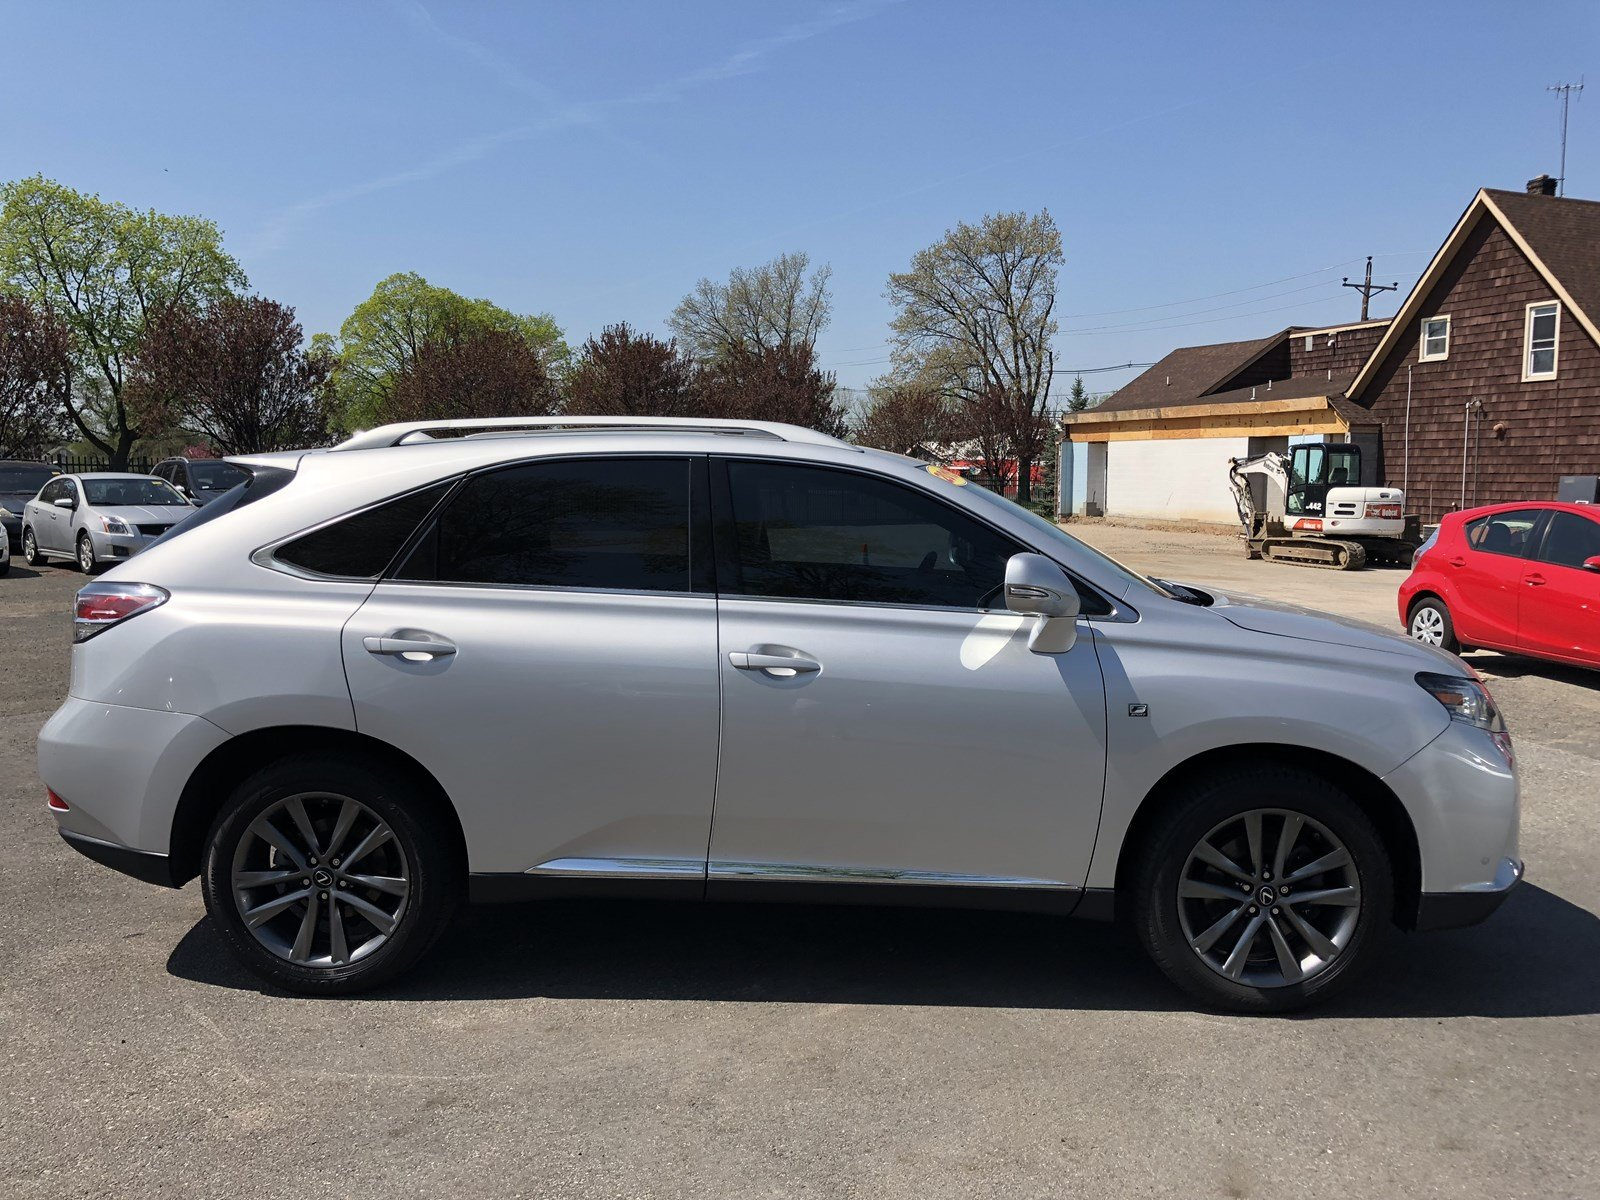 base ma used hampshire lexus lawrence for boston massachusetts available in essex sale autouse car new rx andover